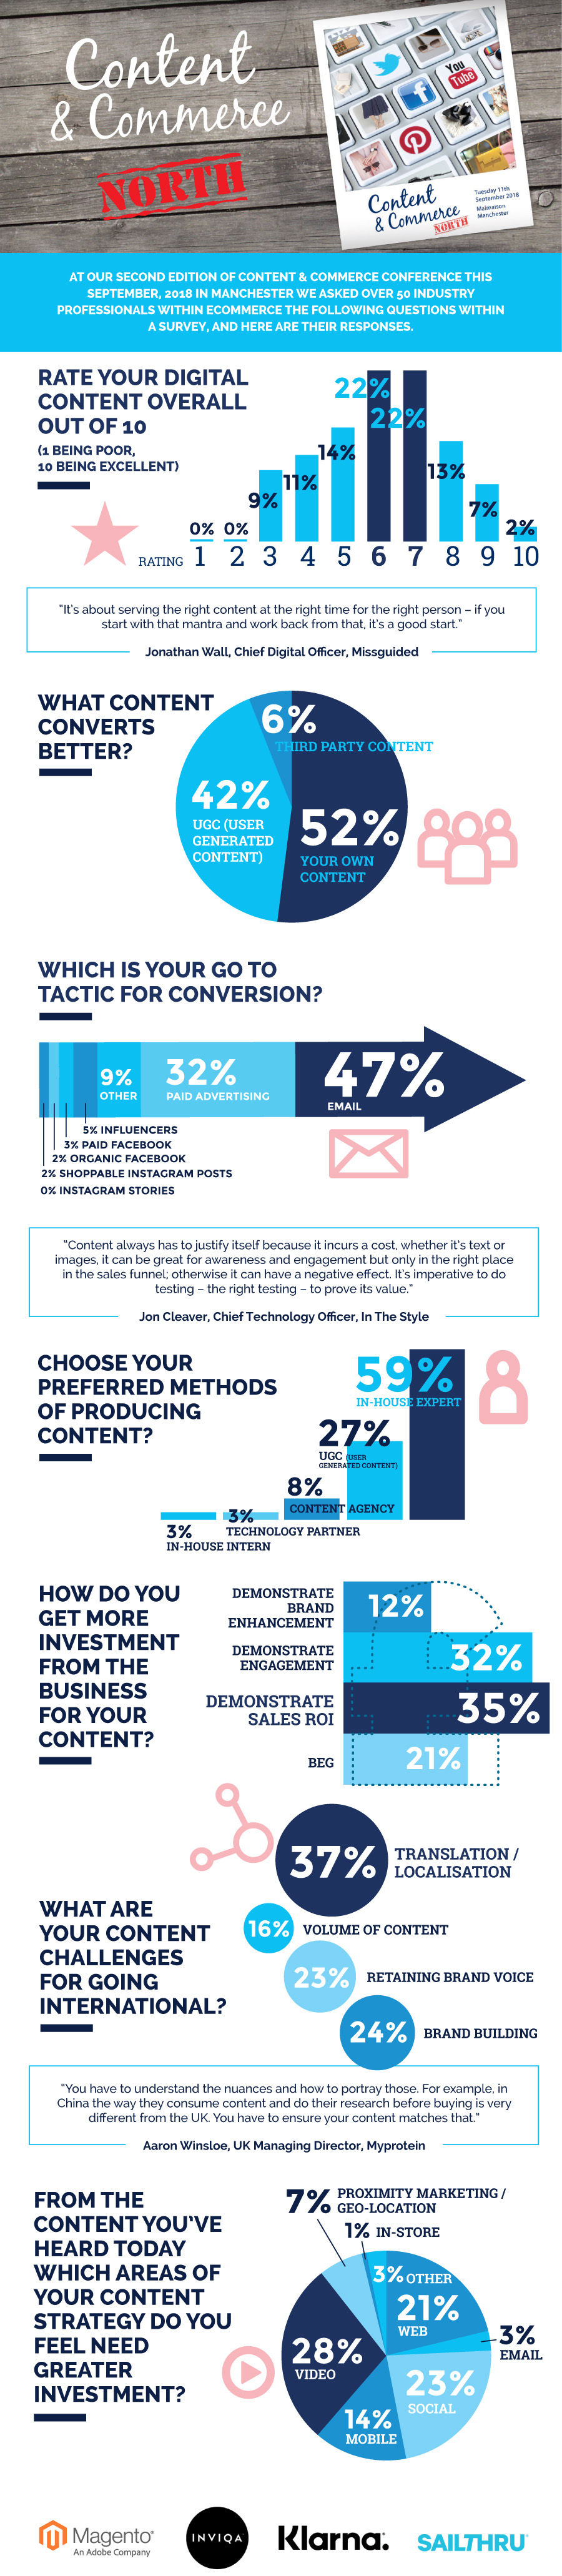 ContentCommerce-North-2018-Infographic-All.jpg